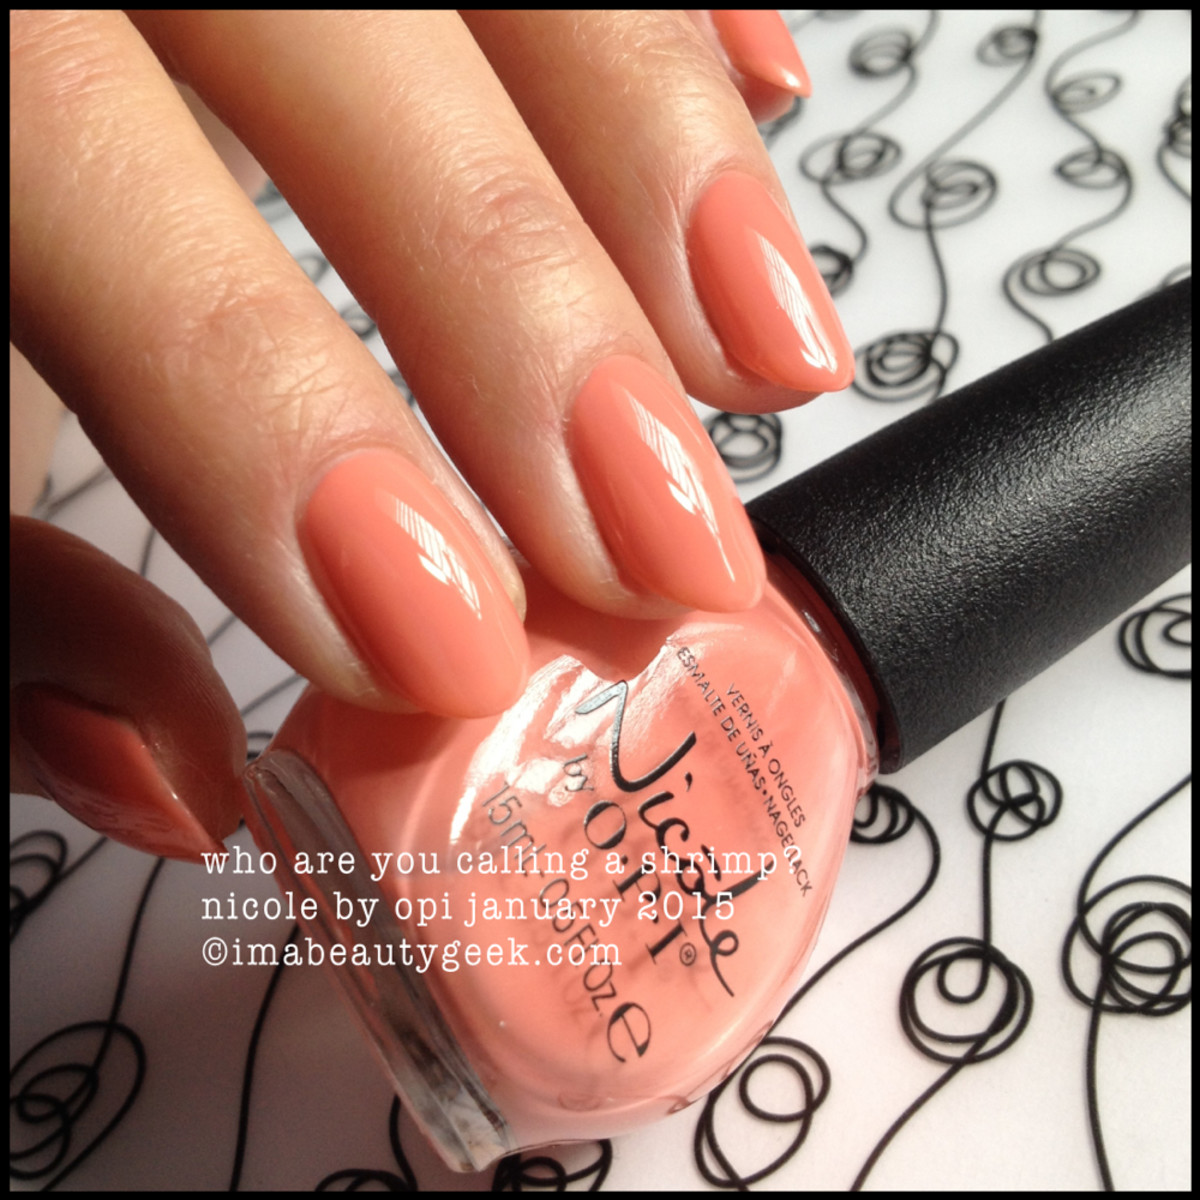 Nicole by OPI Who Are You Calling a Shrimp?